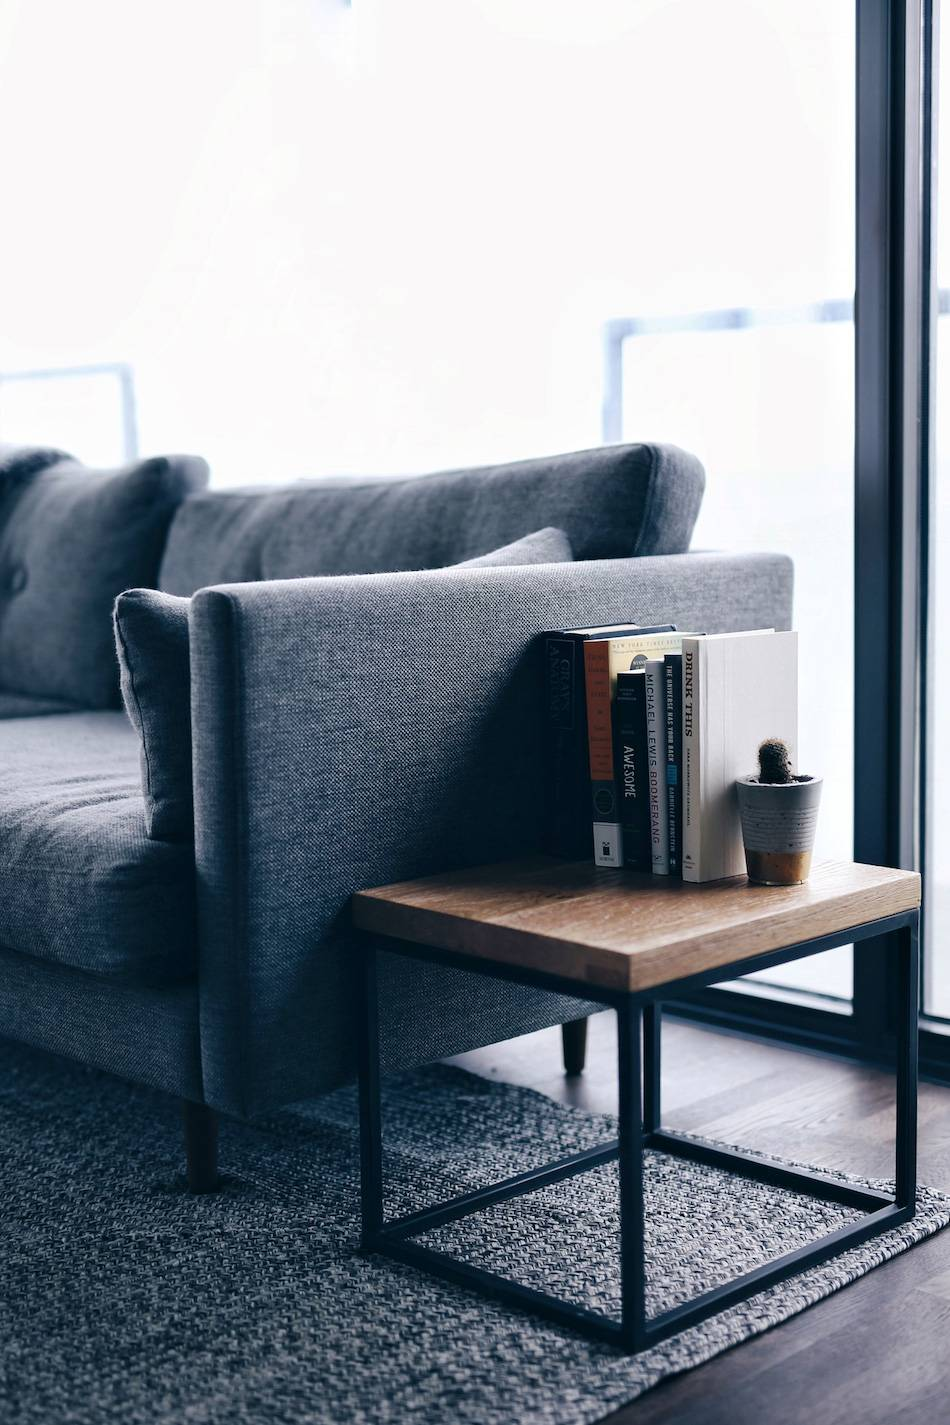 Style-and-beauty-blogger-Jill-Lansky-of-The-August-Diaries-shares-her-simple-and-minimalist-apartment,-interior-inspiration,-Article-Taiga-tables,-grey-couch